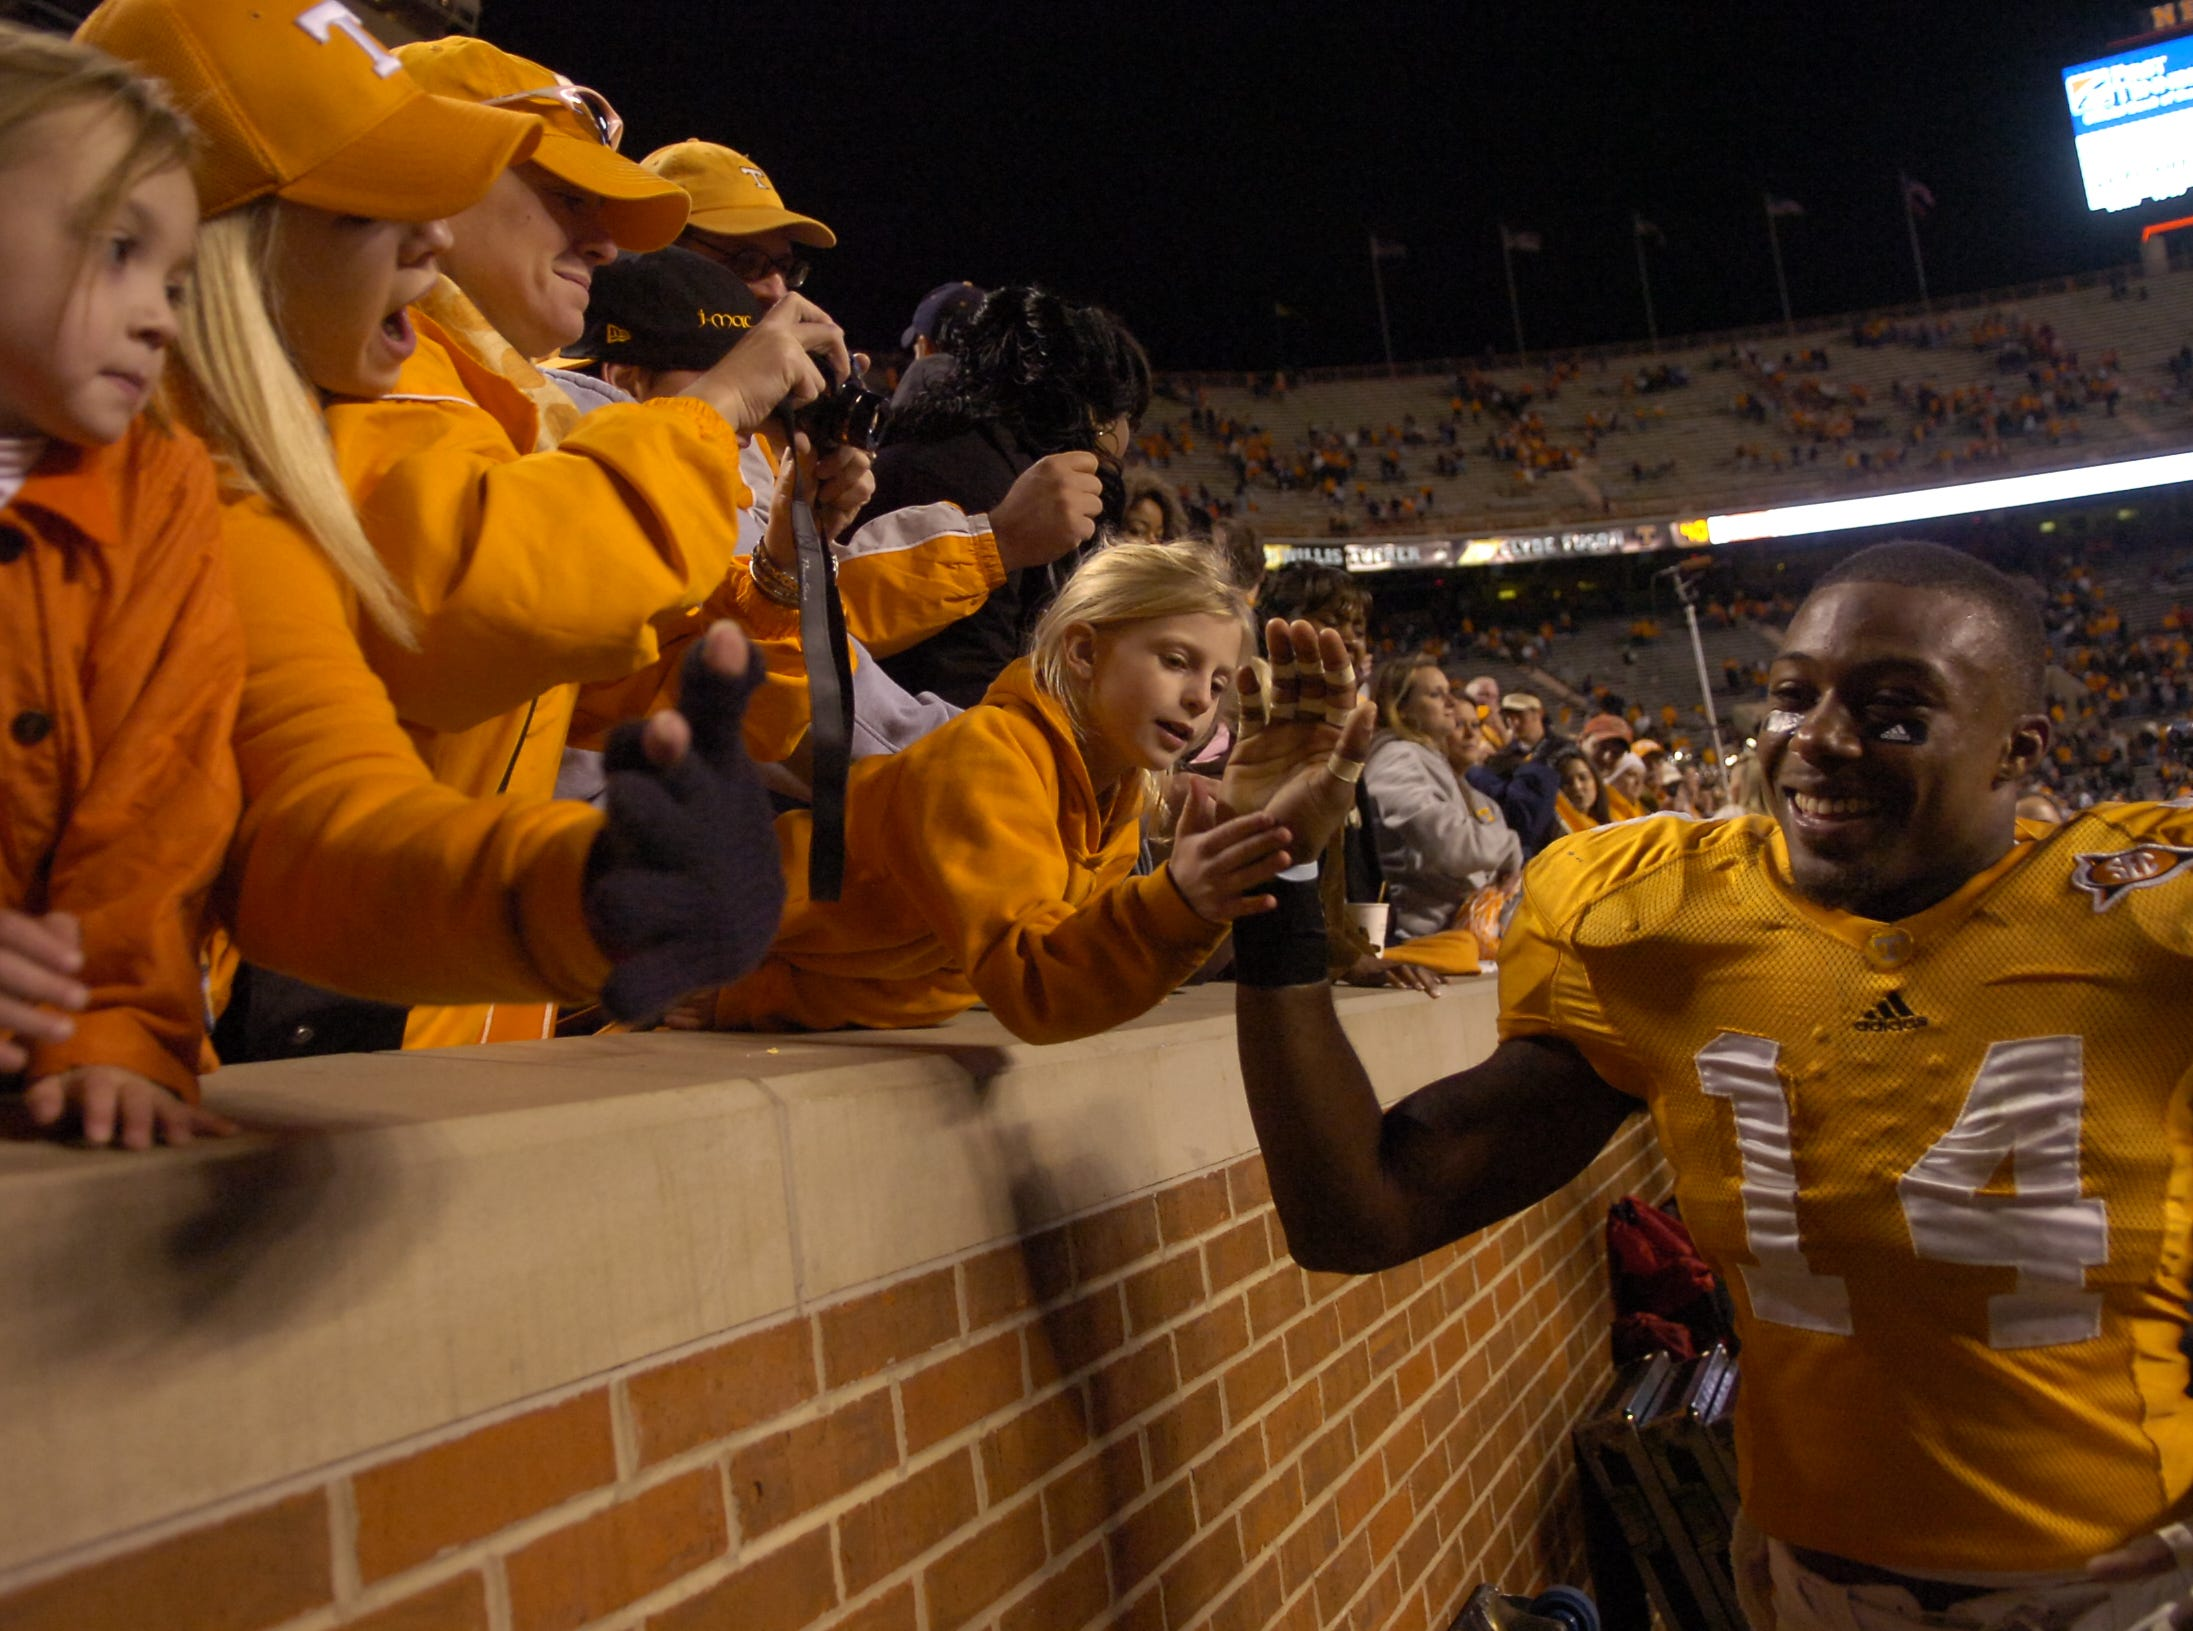 Tennessee cornerback Eric Berry (14) greets fans after the 31-16 win over Vanderbilt on Saturday, Nov. 21, 2009 at Neyland Stadium.